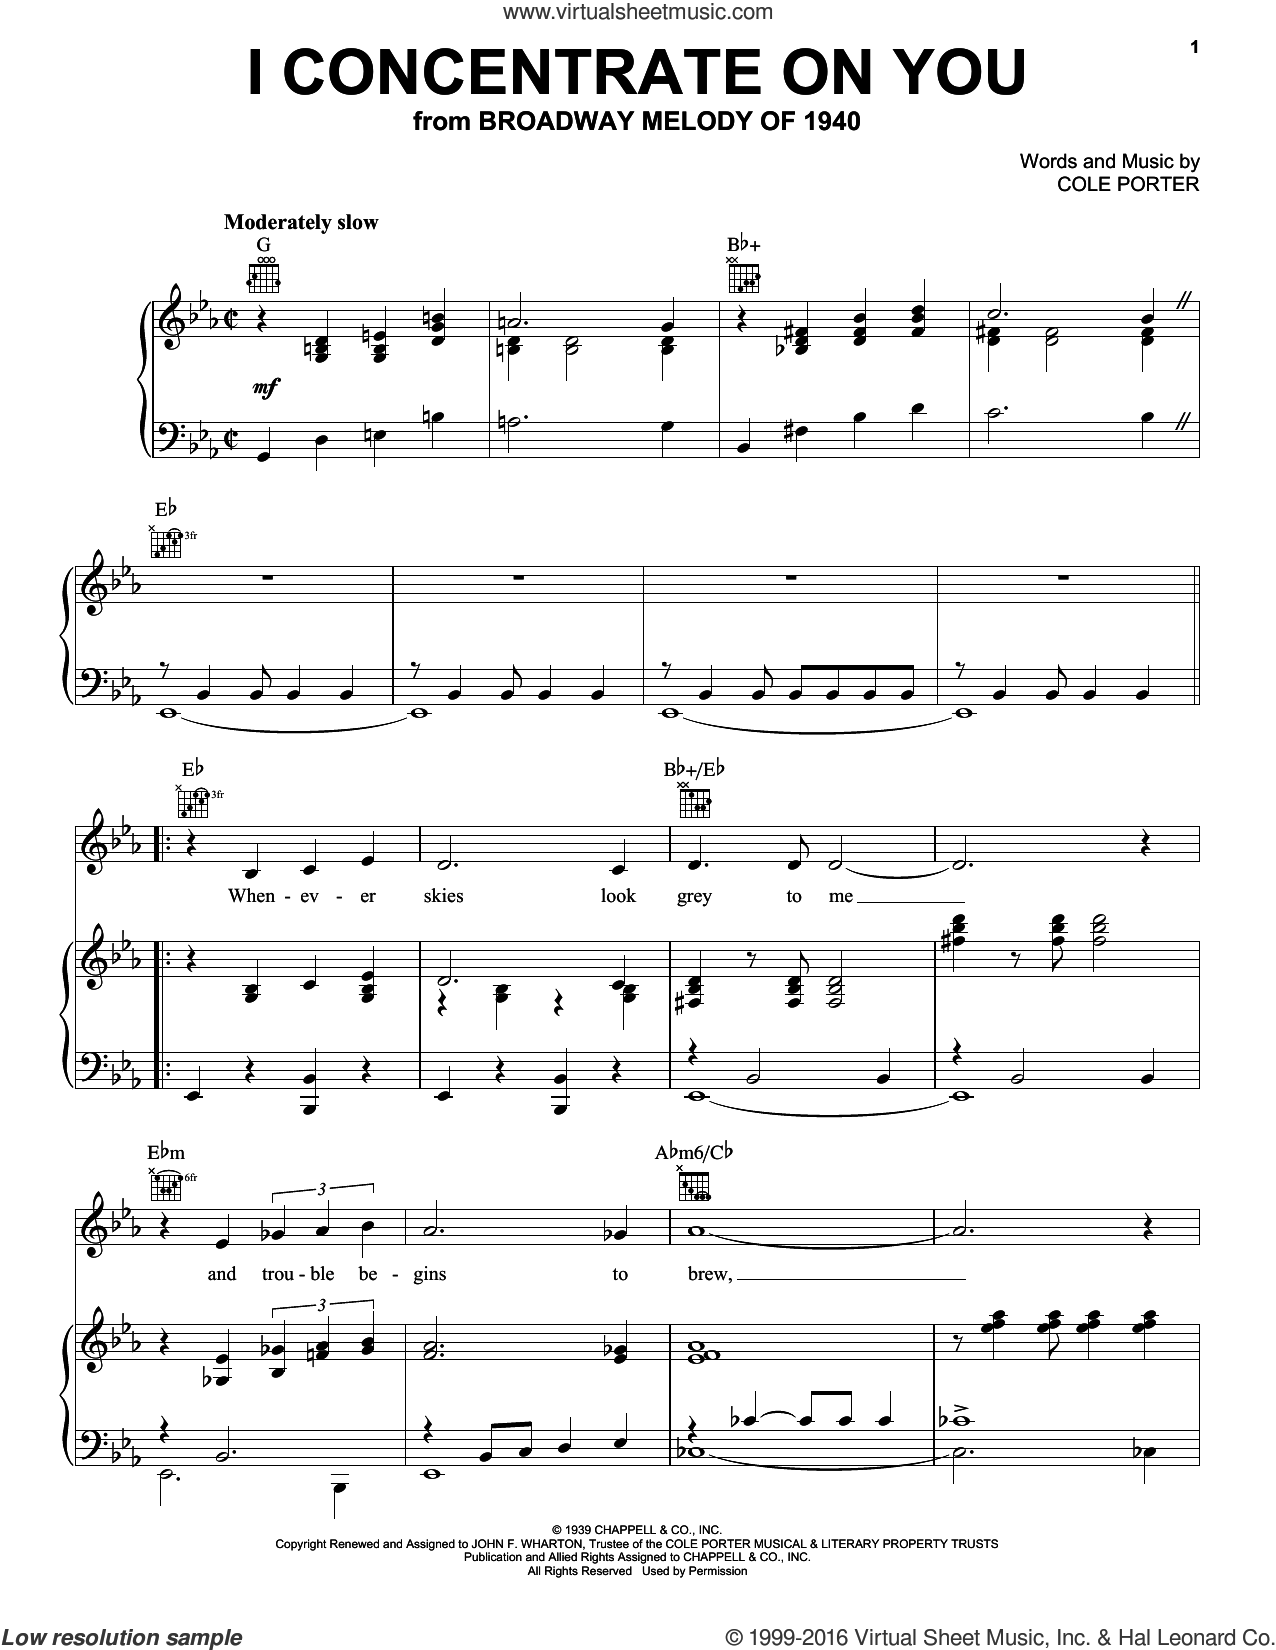 I Concentrate On You sheet music for voice, piano or guitar by Frank Sinatra